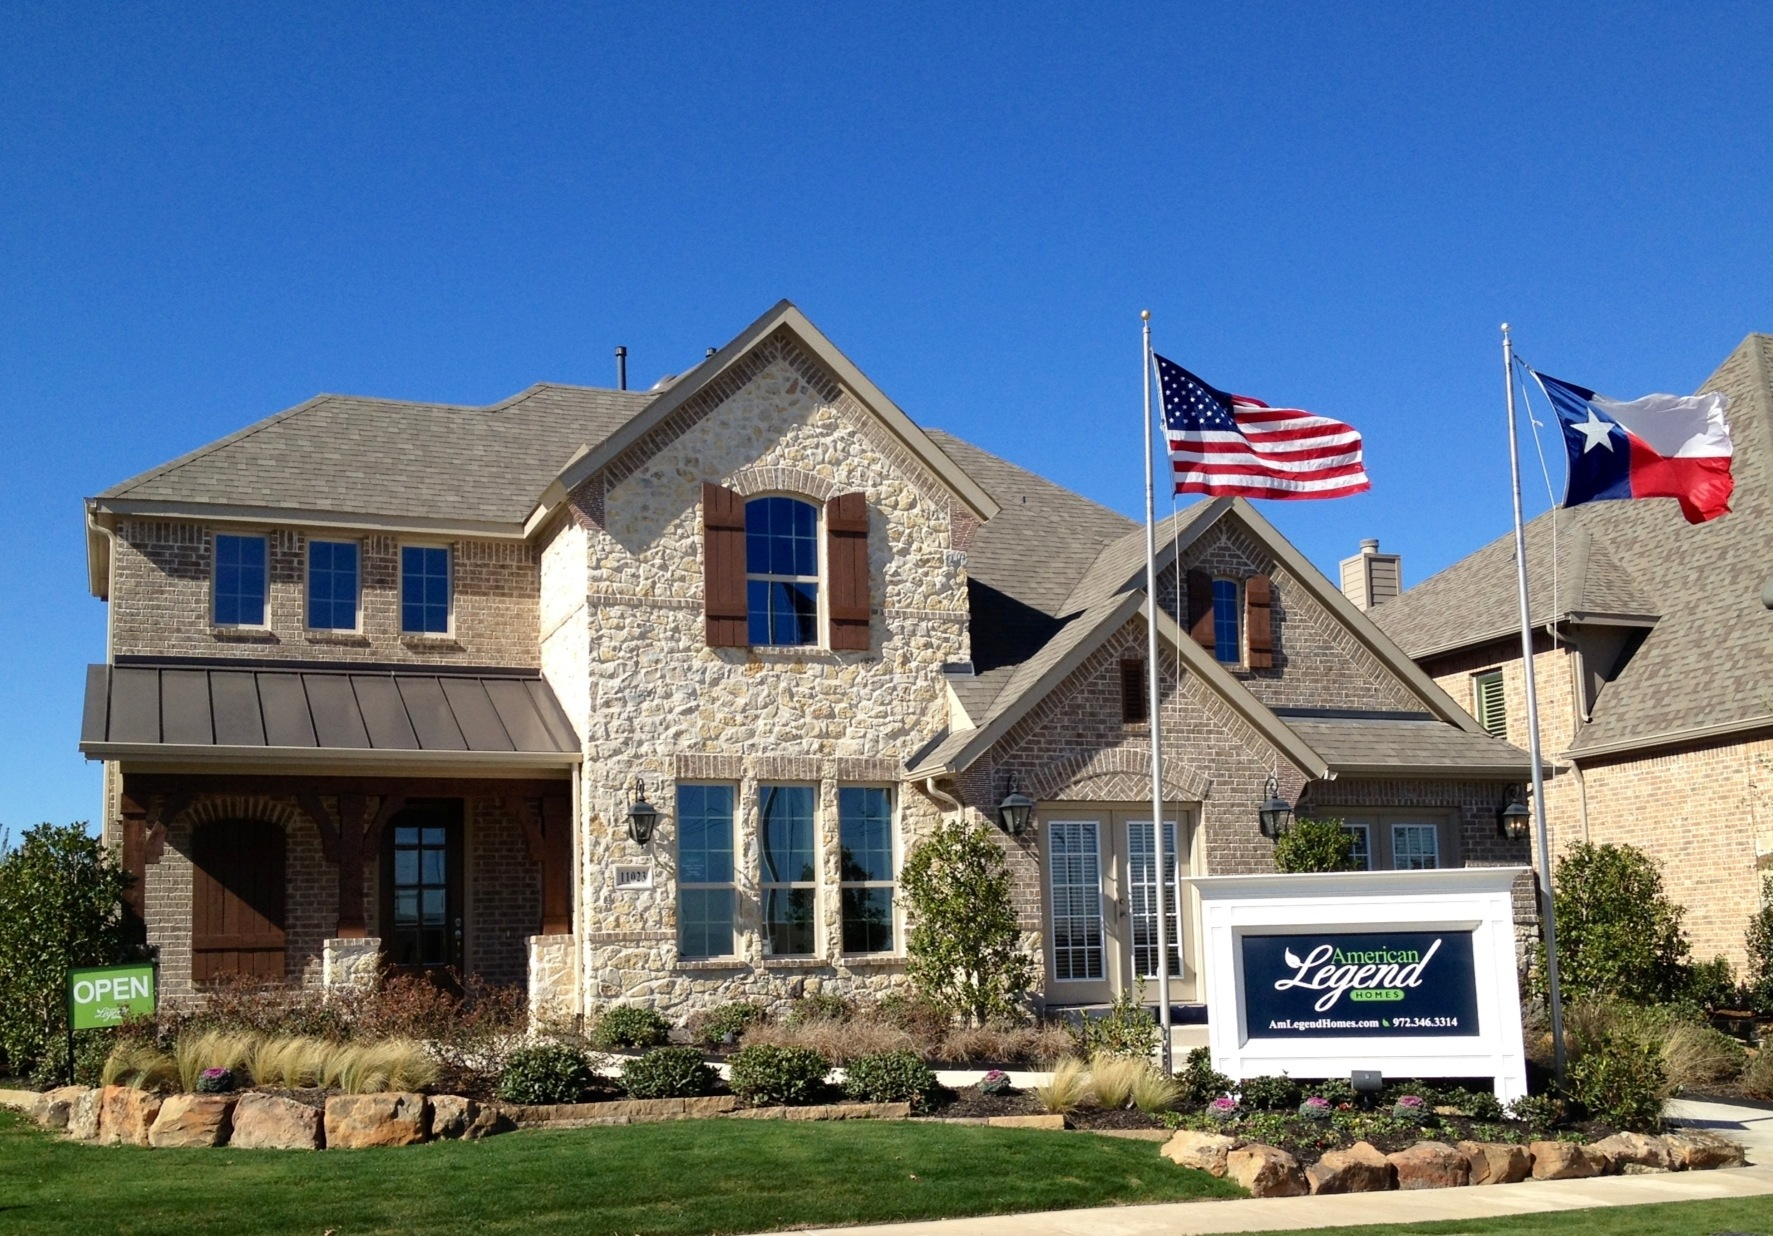 American legend frisco update frisco richwoods for American builders